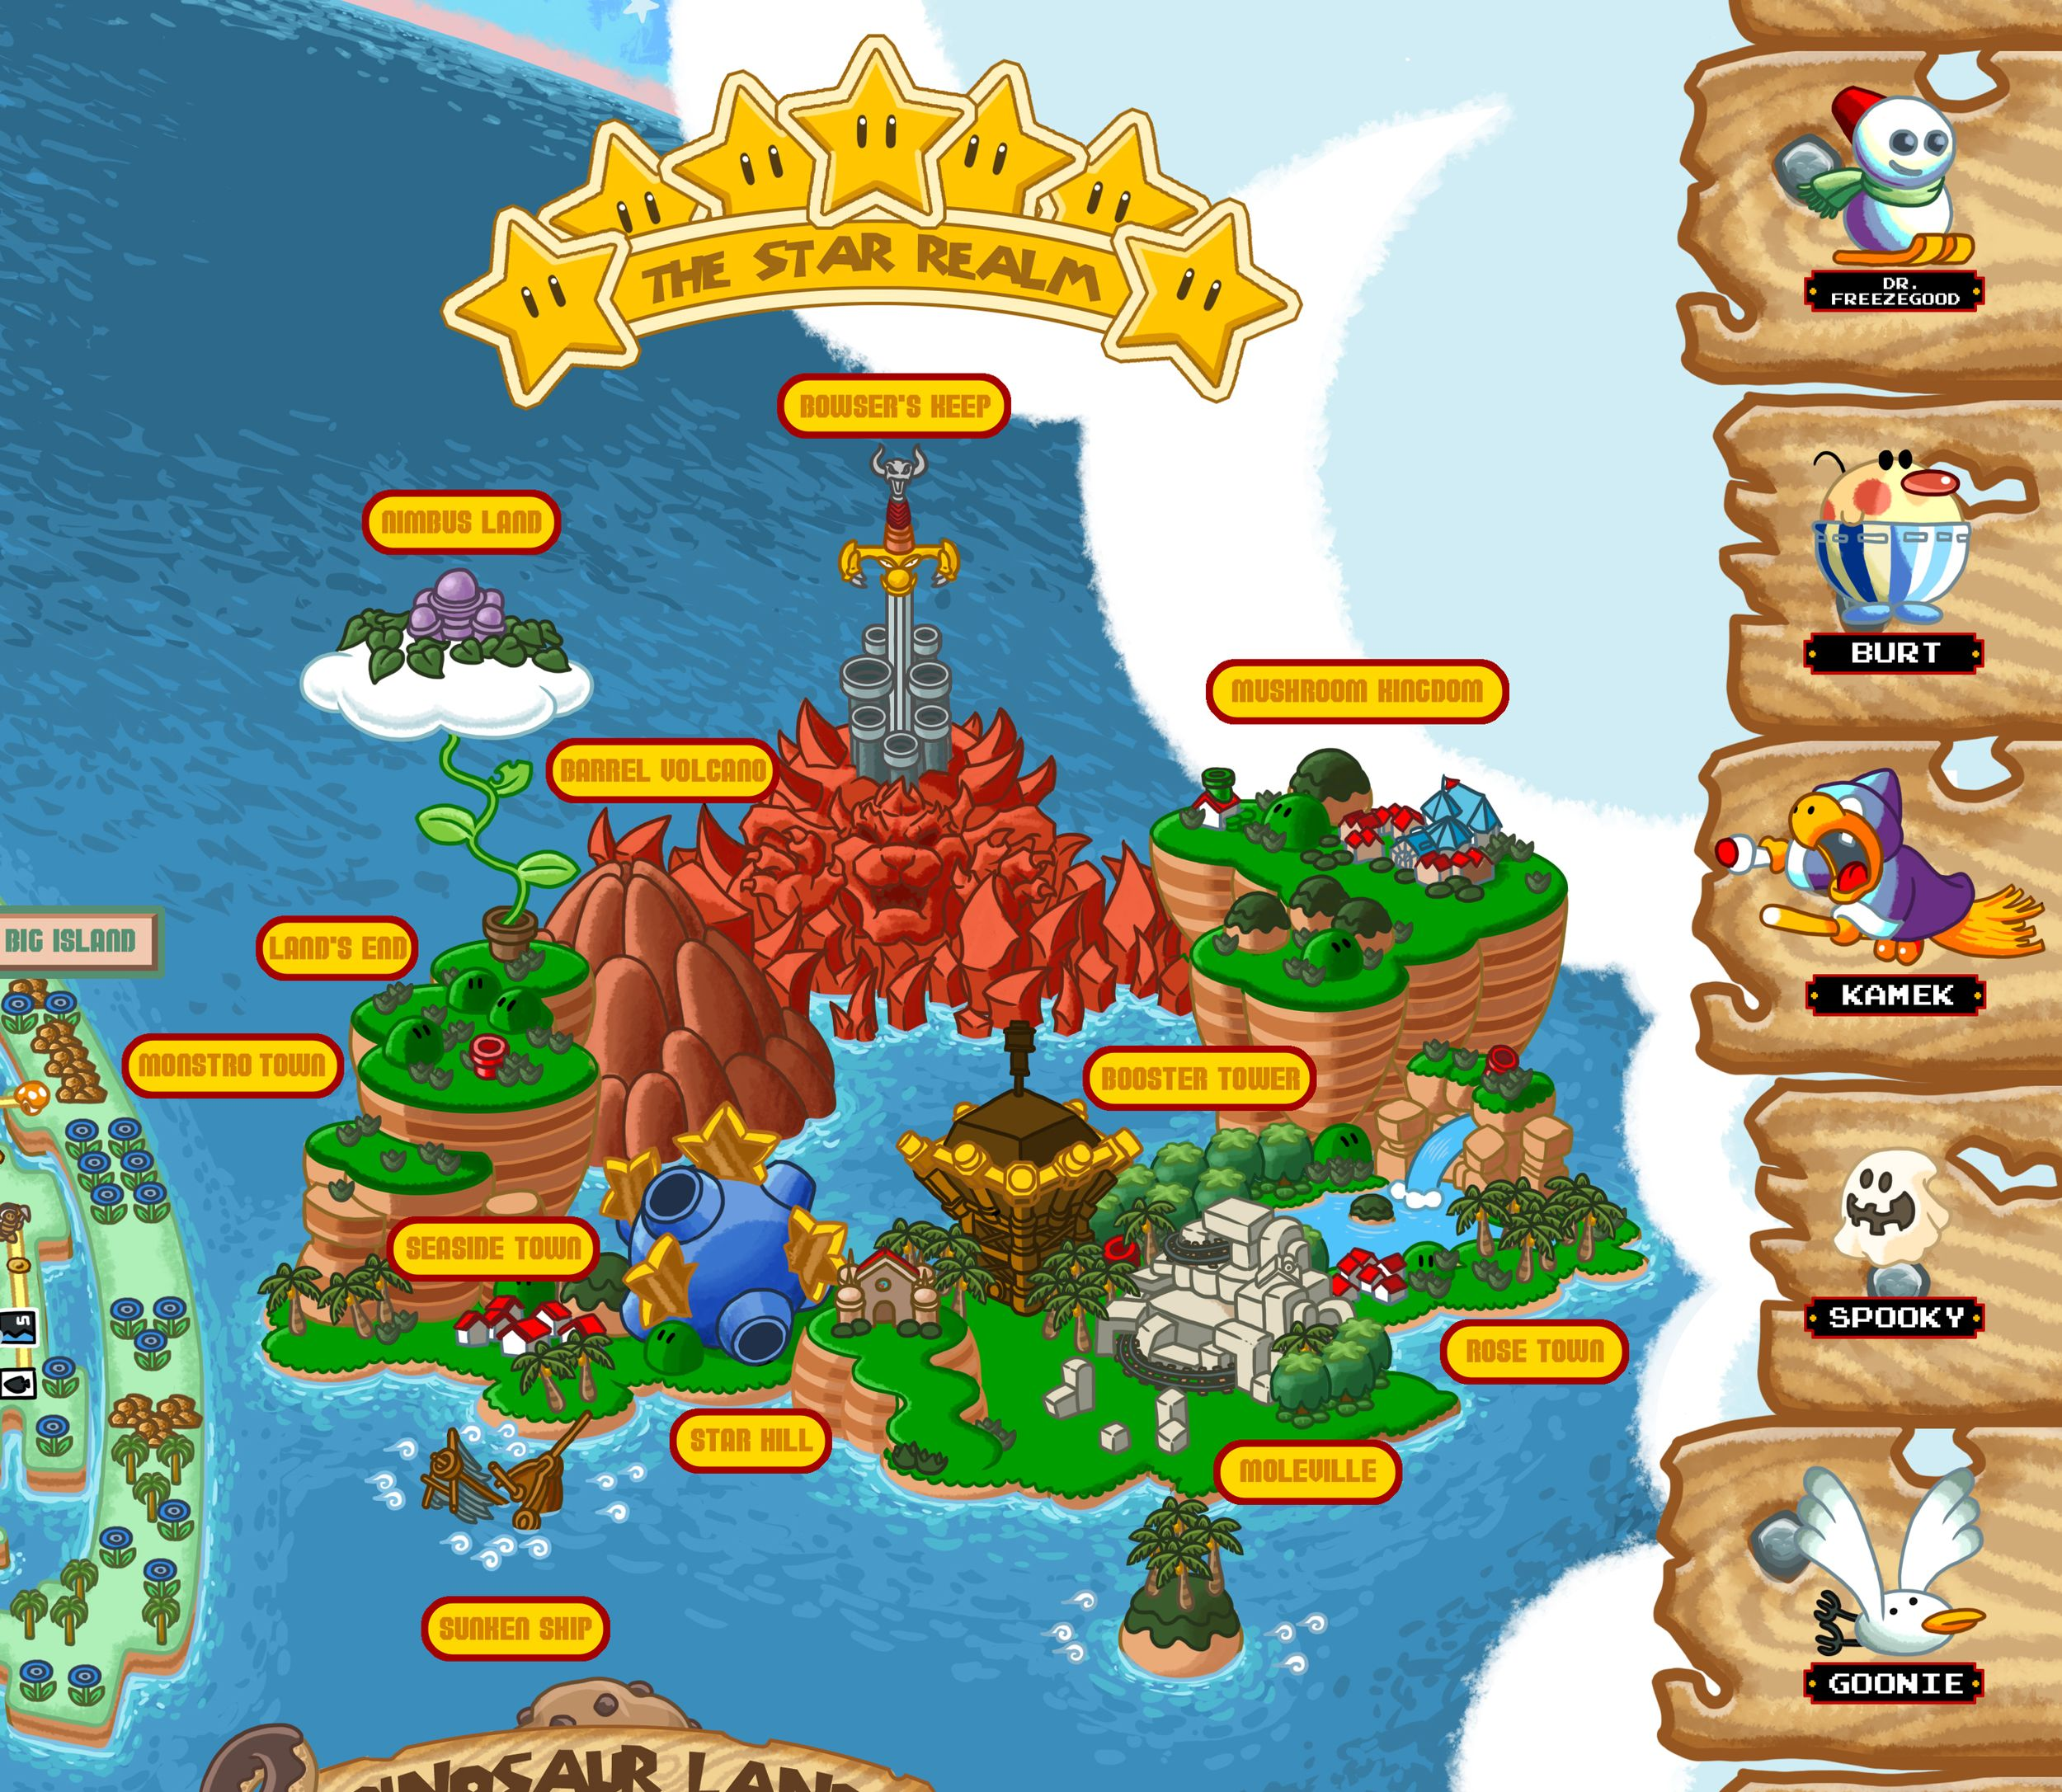 The Mushroom Kingdom 1985 1996 Detail Of A Map Depicting The